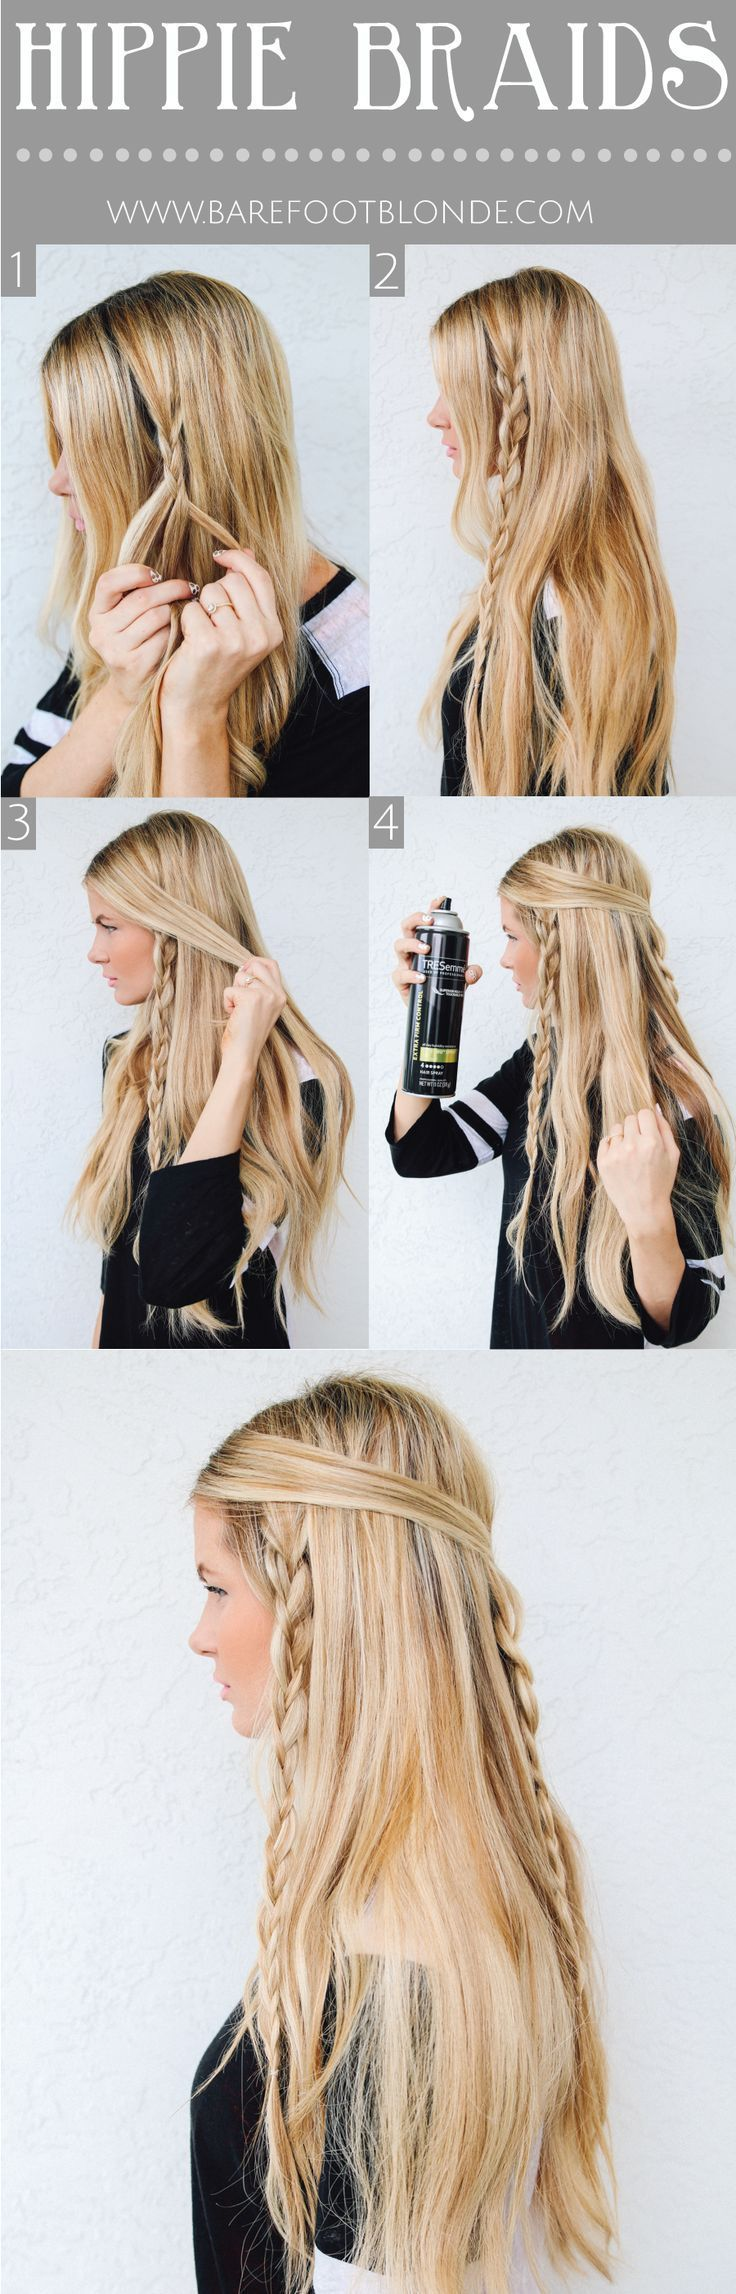 Top 10 Messy Braided Hairstyle Tutorials to Be Stylish This Fall